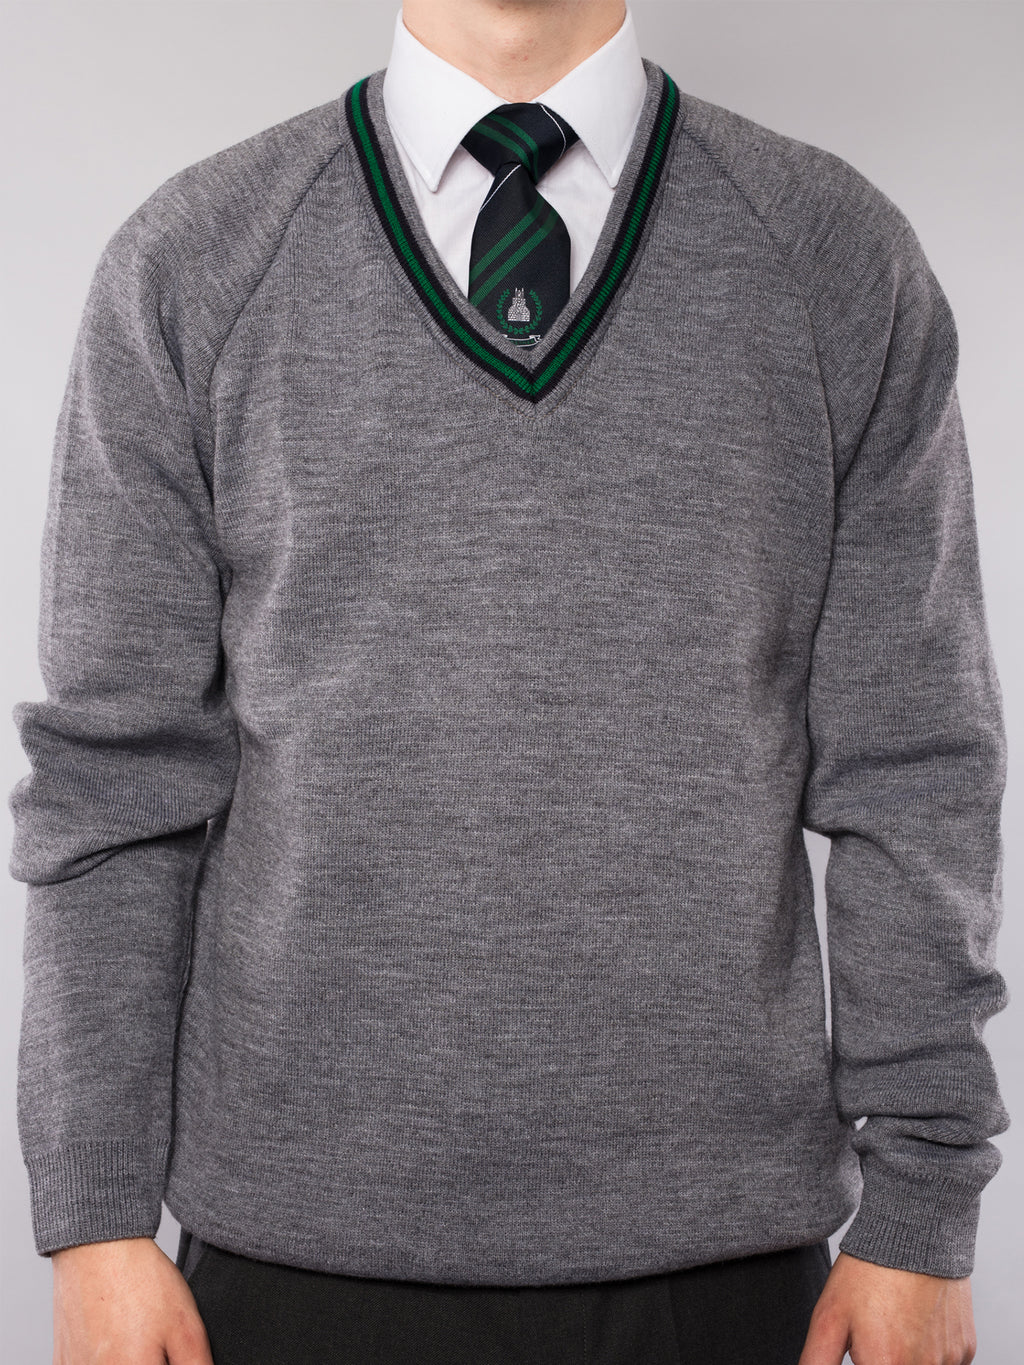 Priory College Boys Jumper